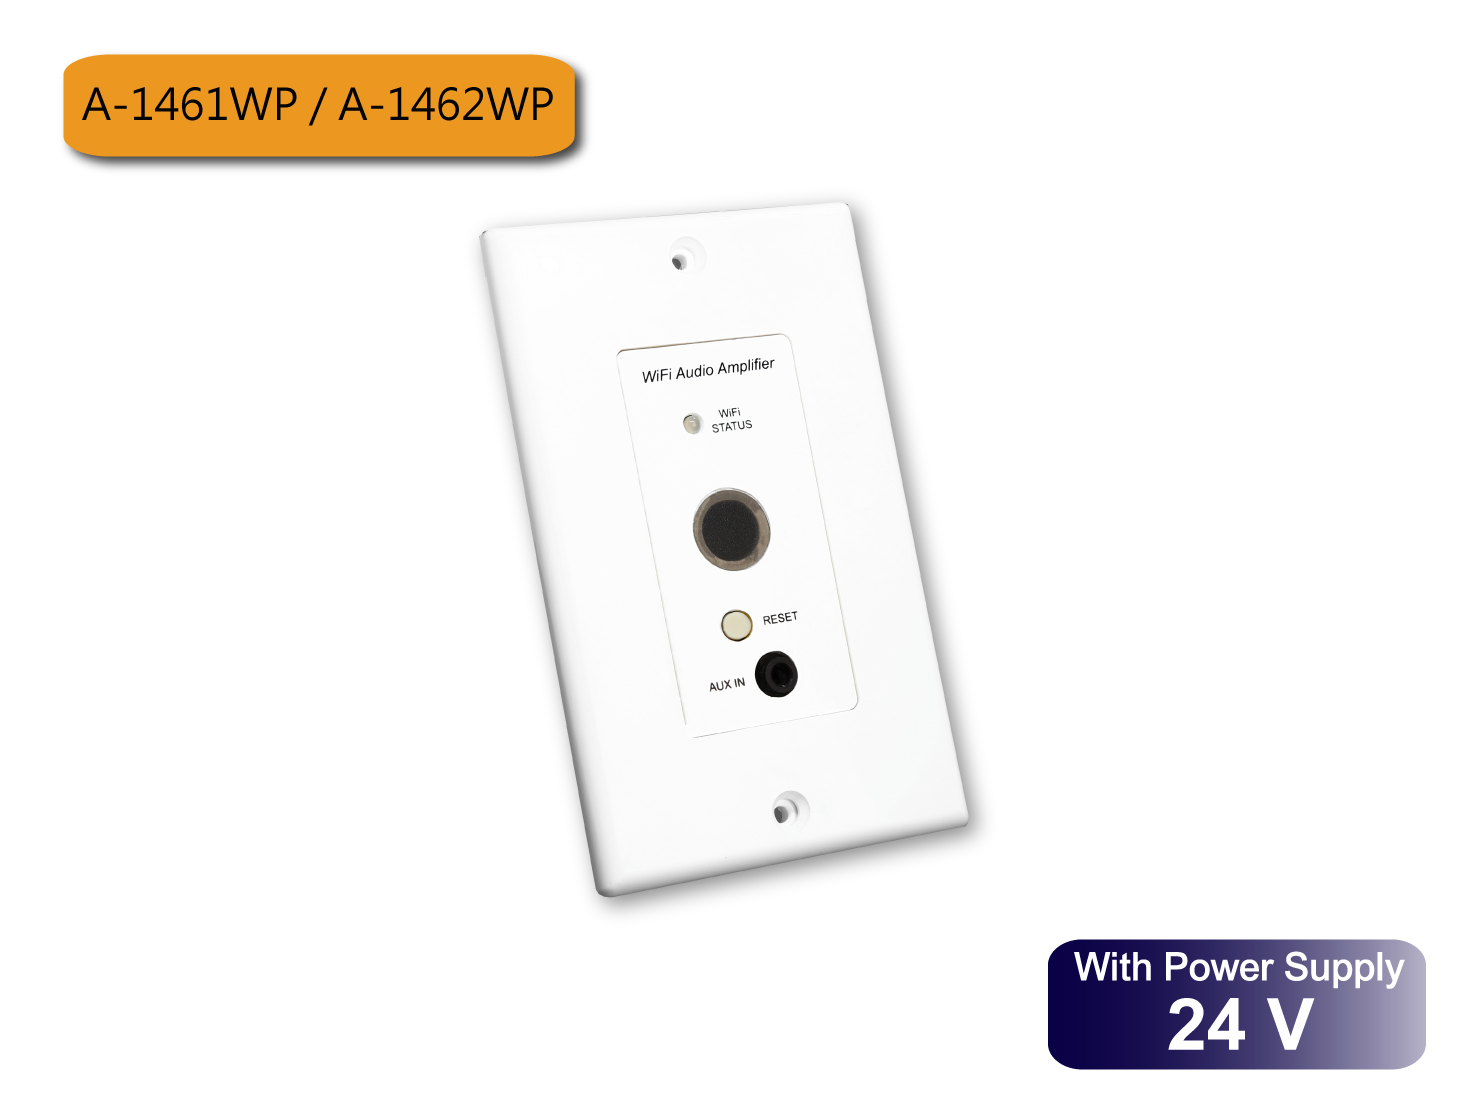 In-Wall 25W / 45W WiFi Audio Amplifier